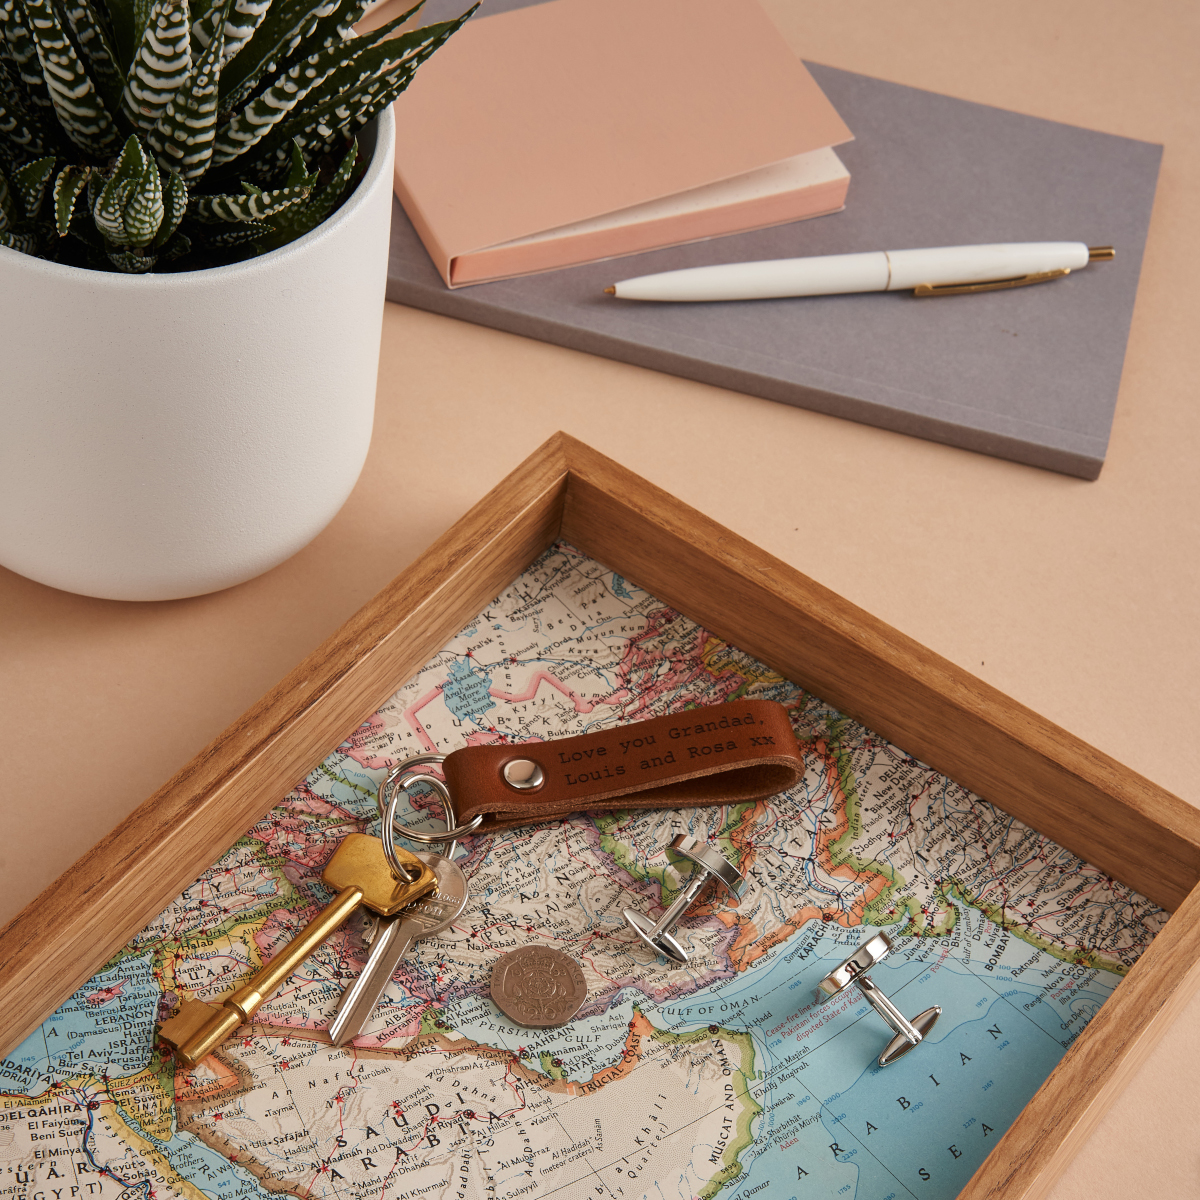 A map desk tidy - a great gift for someone working from home